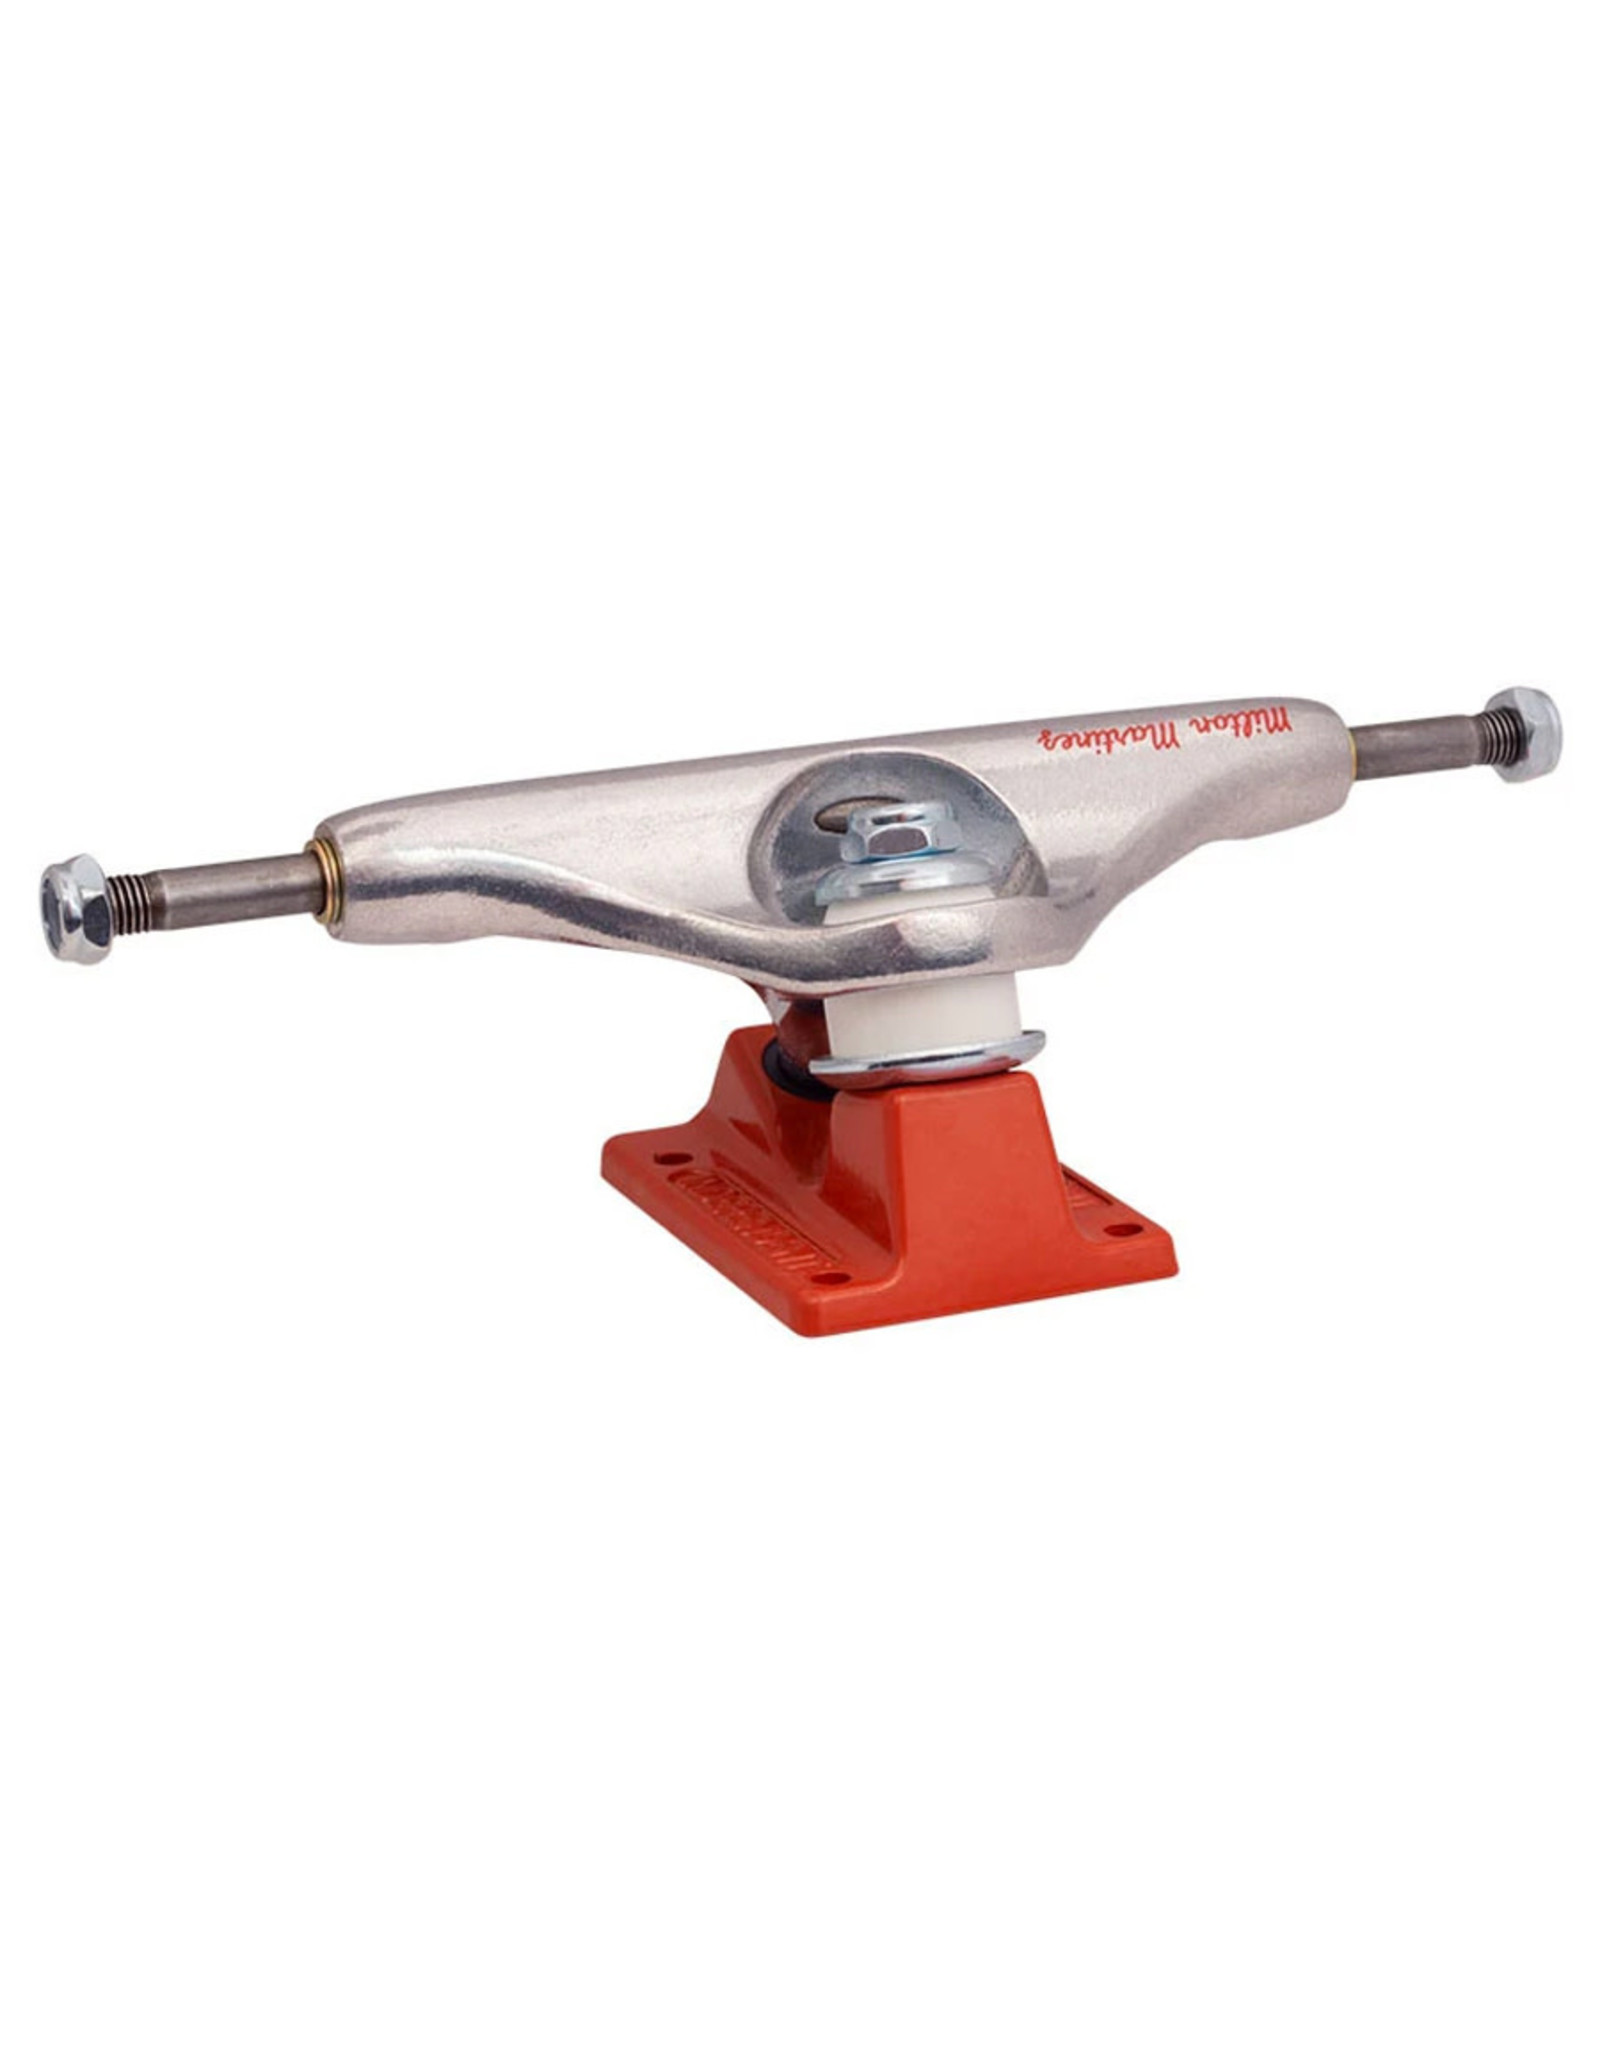 Independent Independent Trucks 144 Stage 11 Milton Martinez Standard Silver/Red (Sold in Pair)